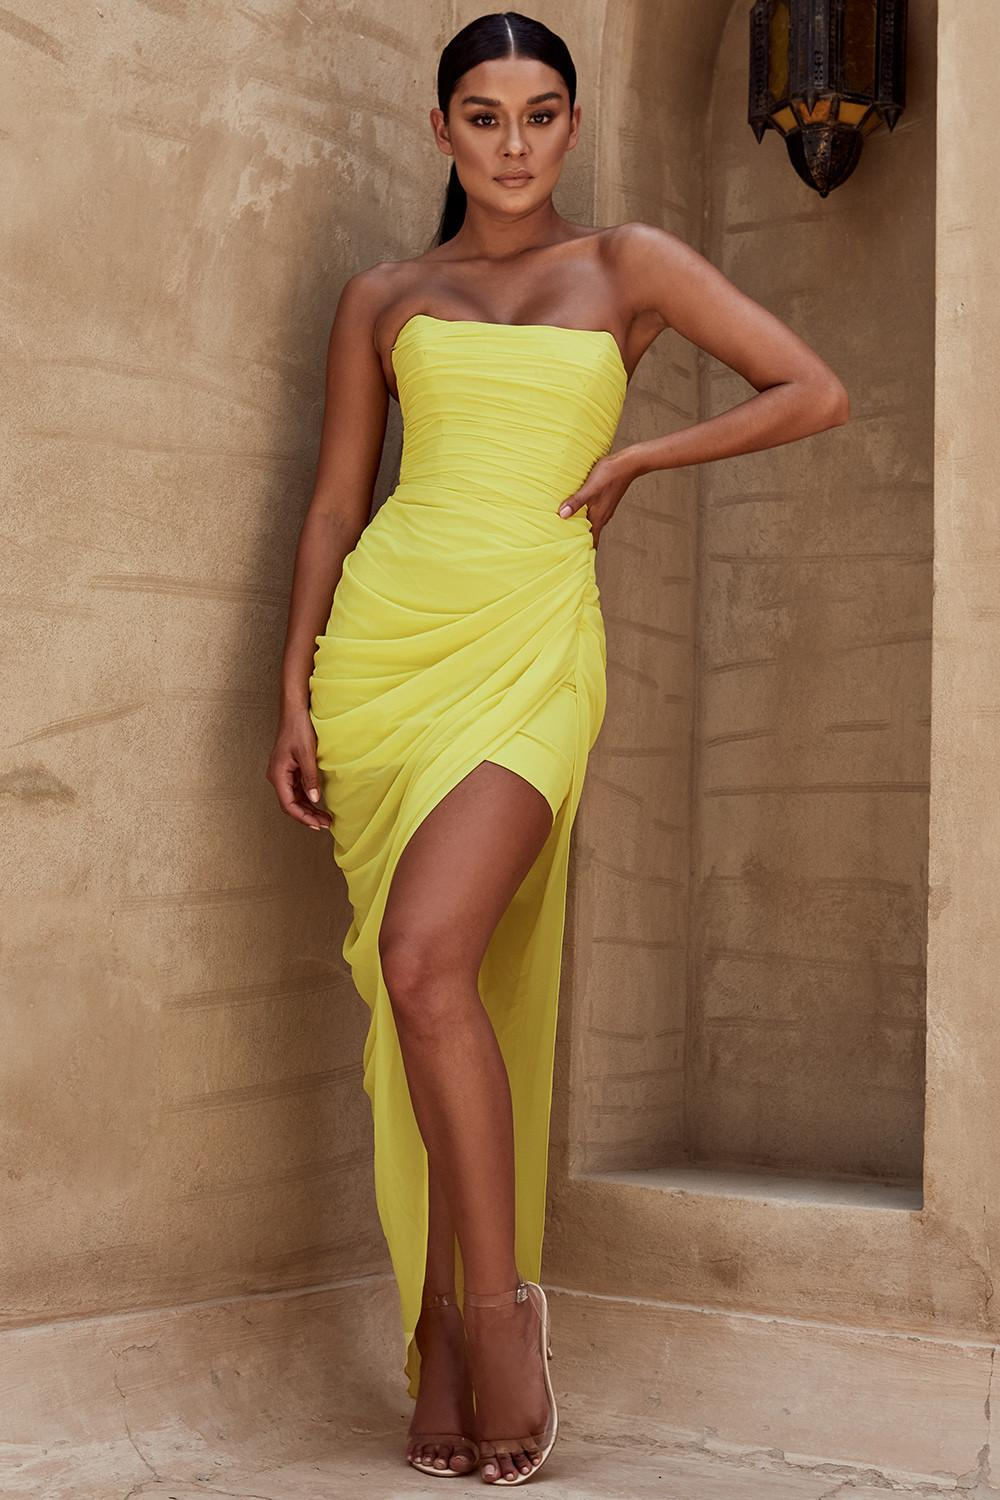 HOUSE OF CB Paloma Dress Yellow size 8 | The Volte